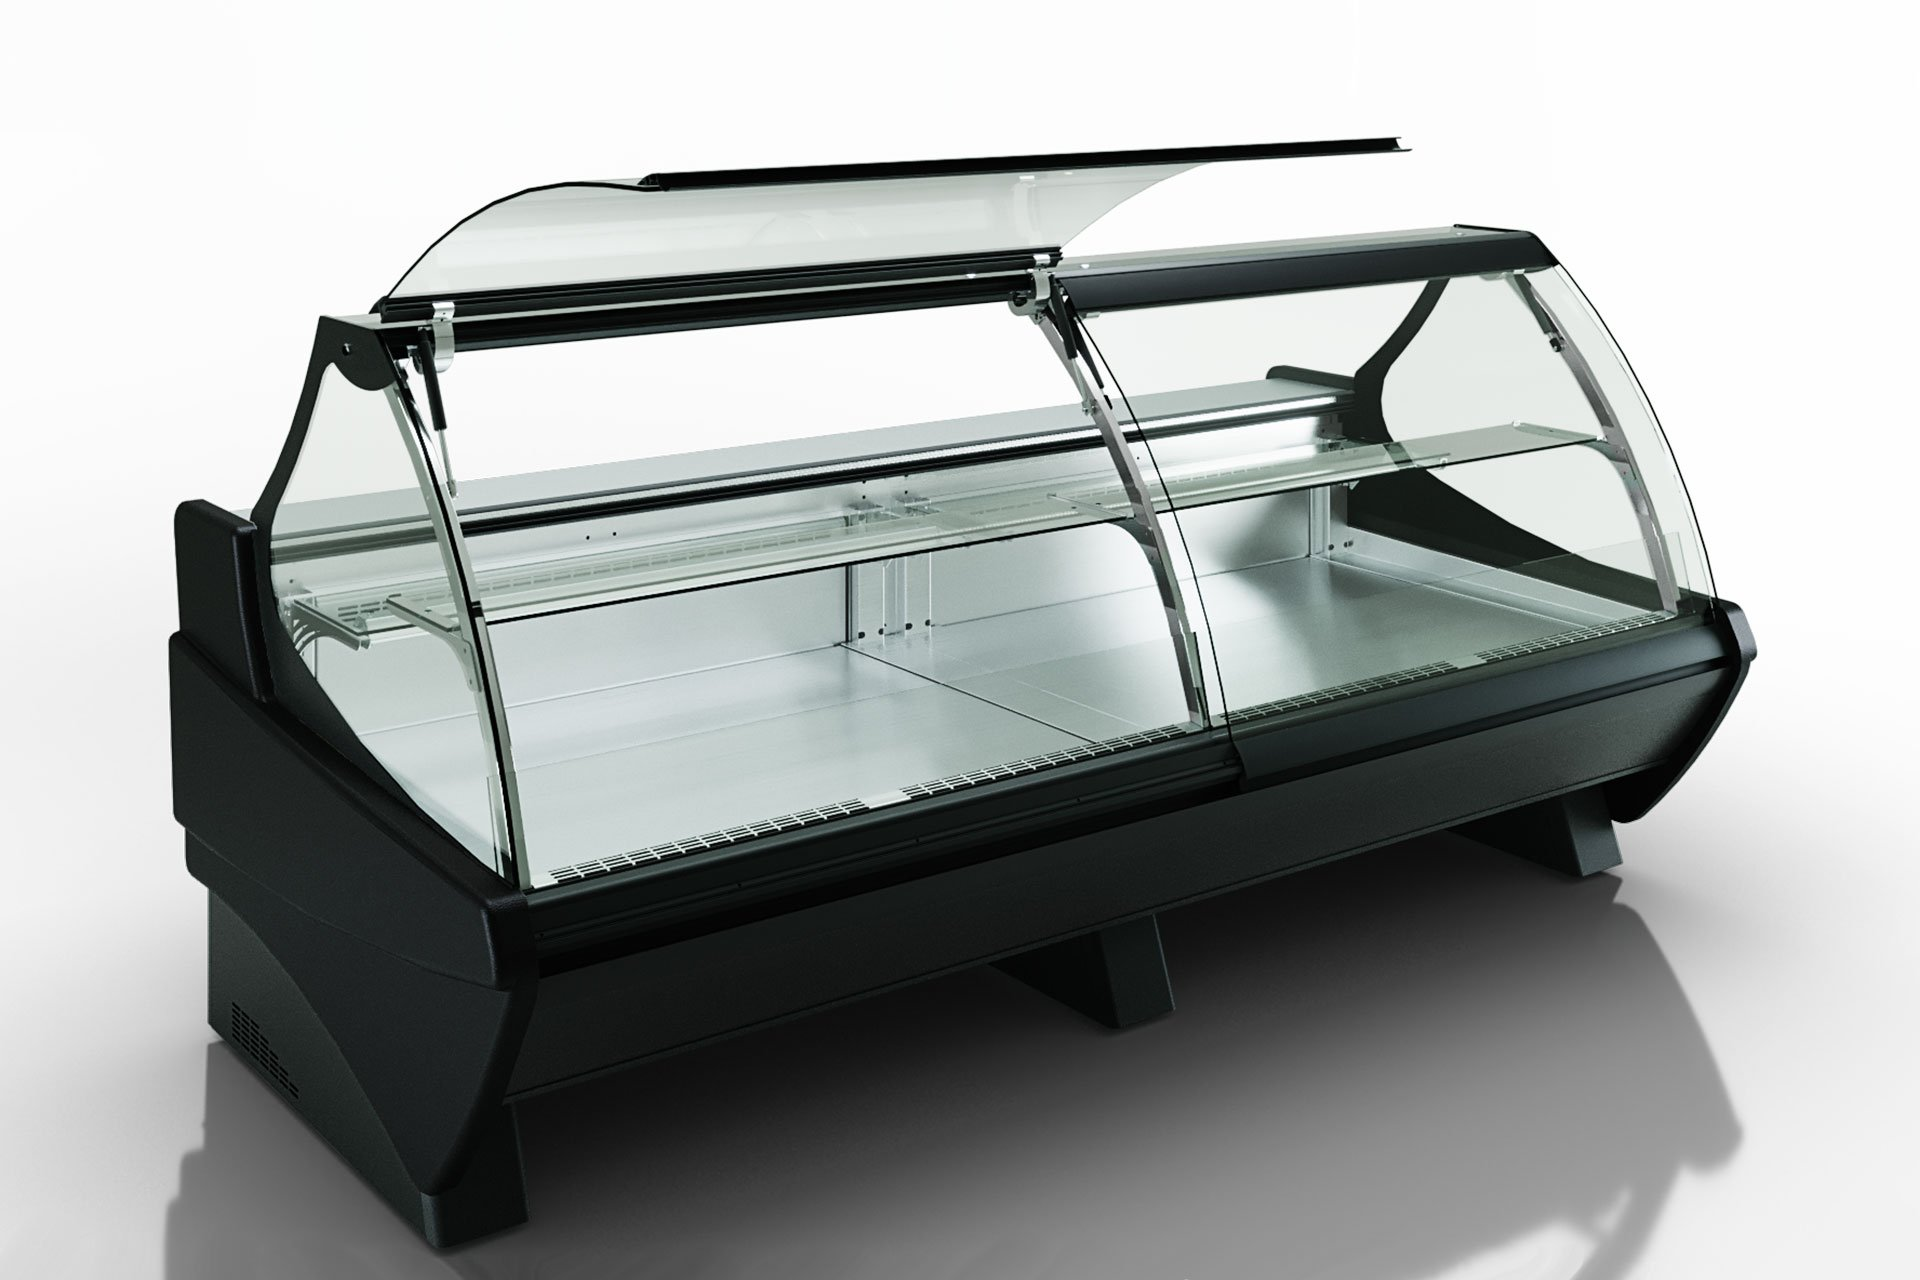 Symphony luxe MG 120 patisserie PS 125-DLM